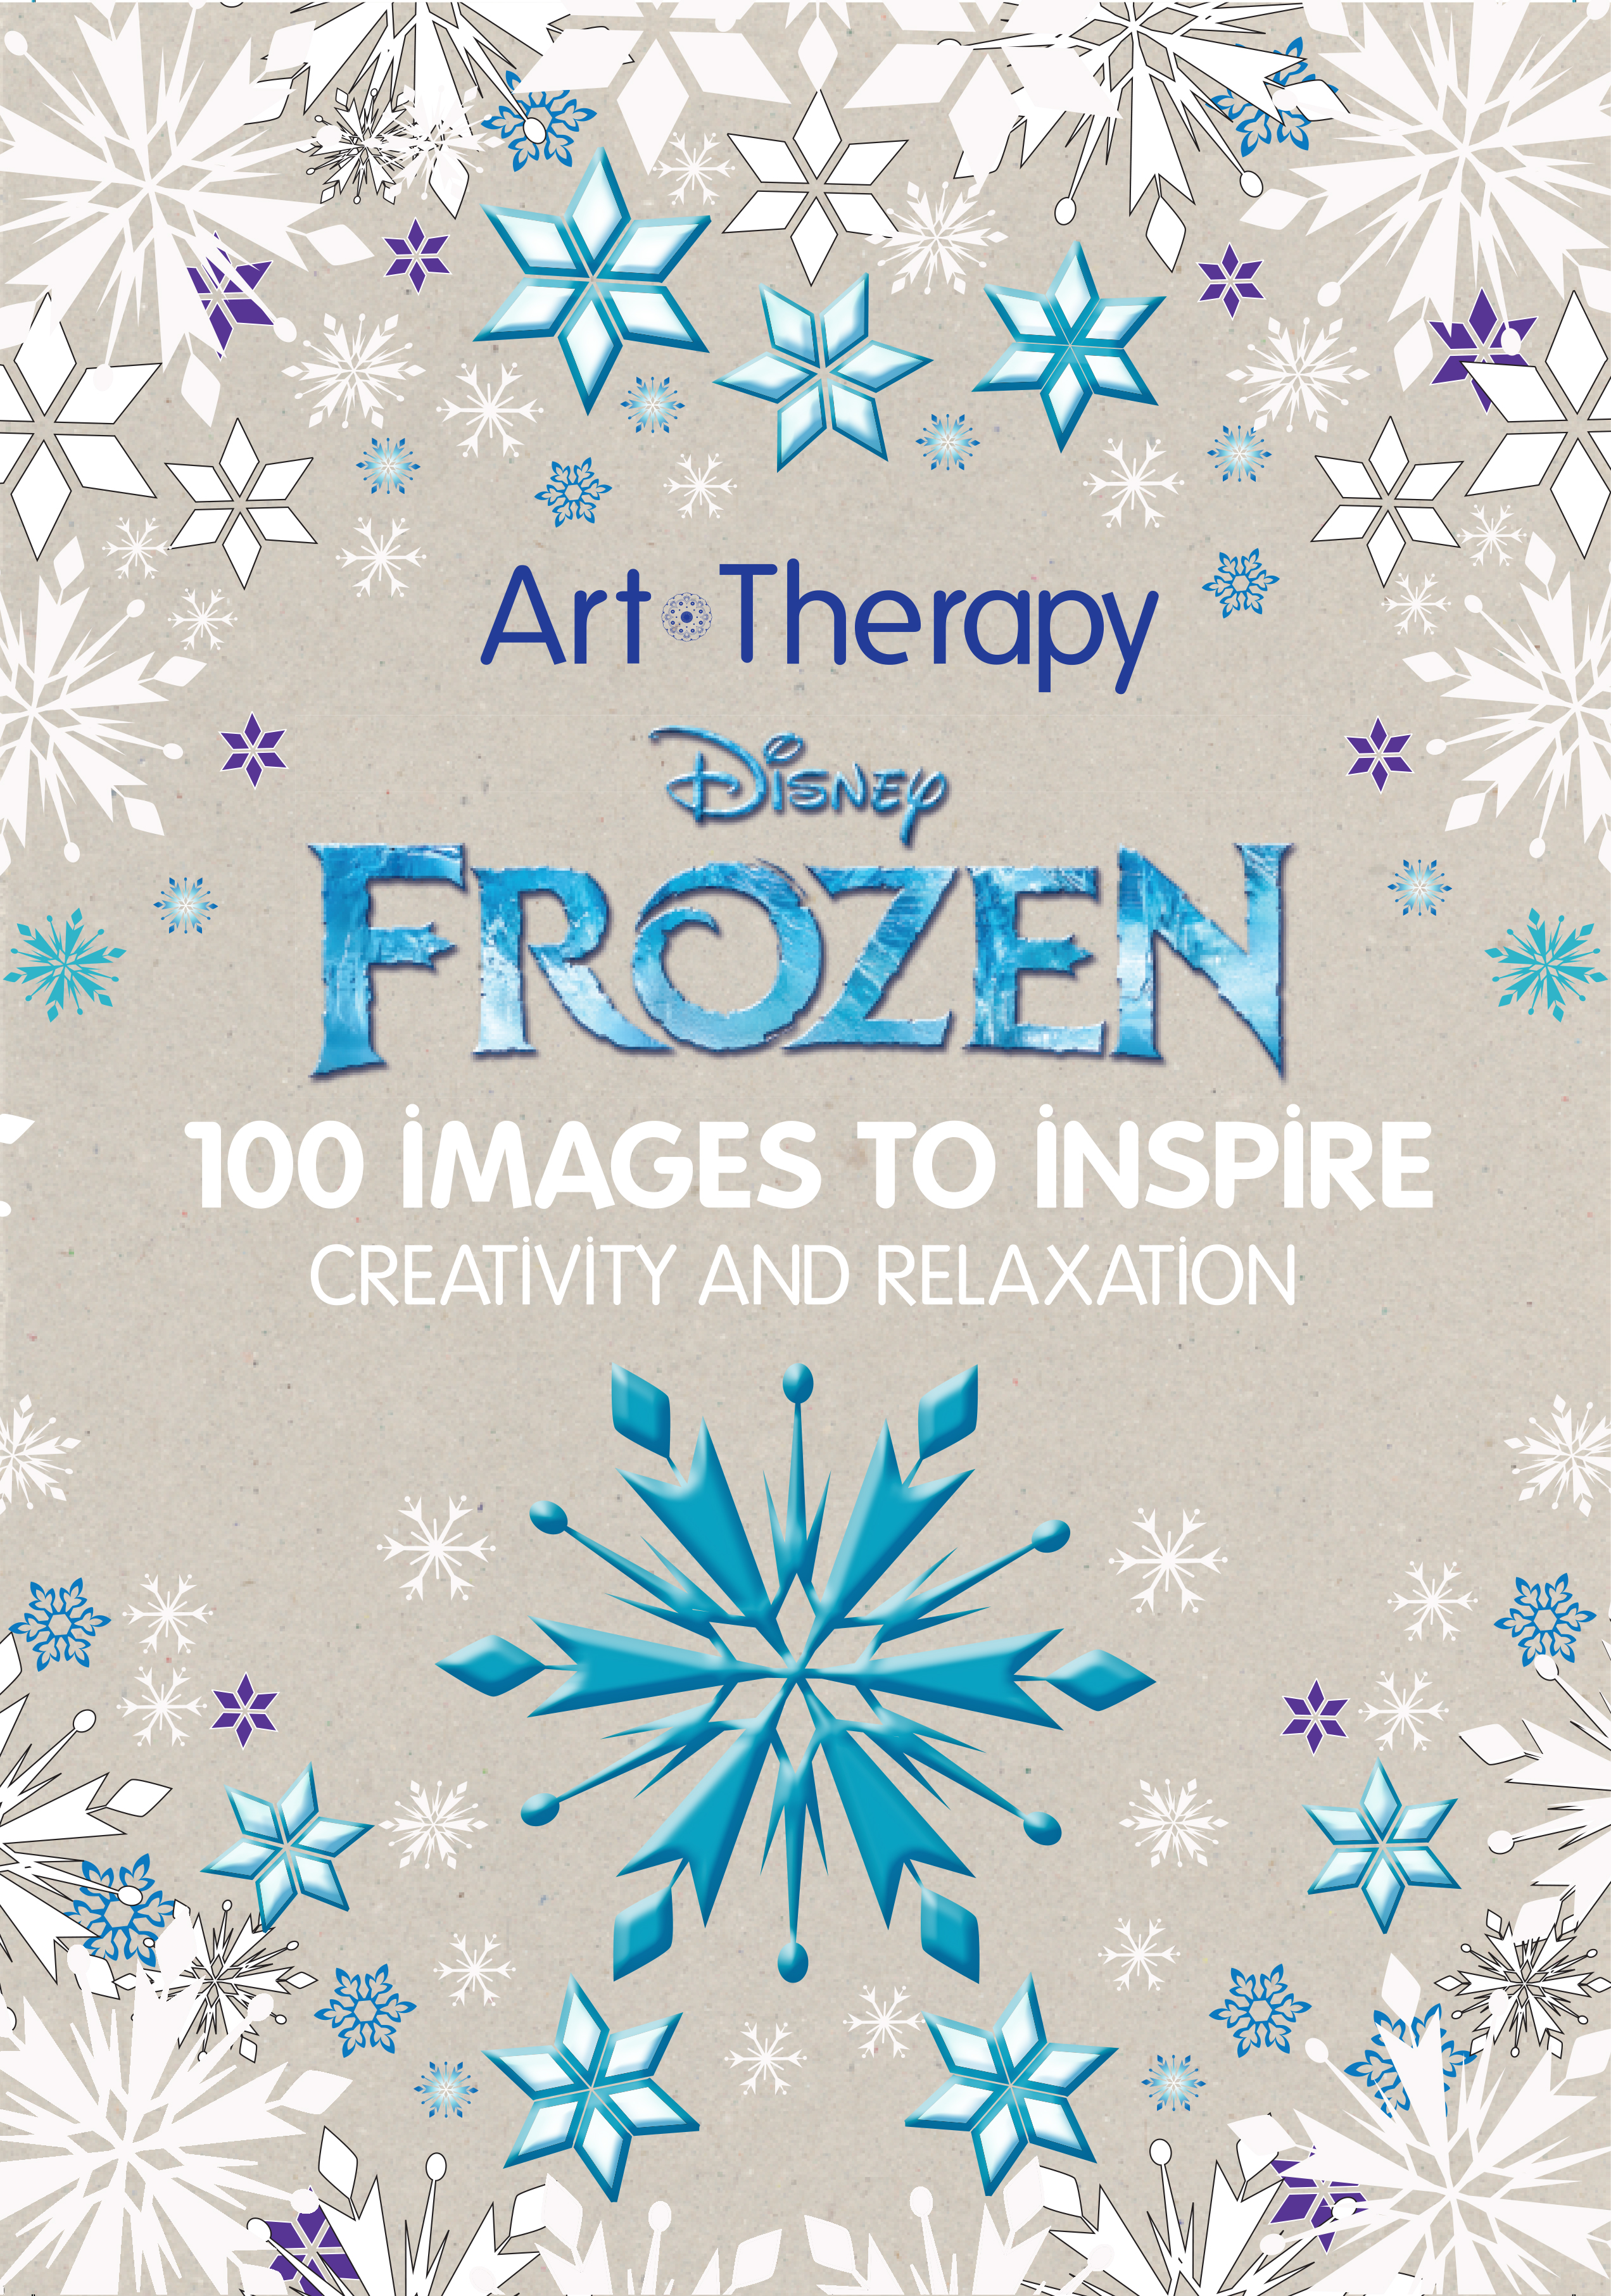 Frozen Coloring Book Art Therapy: Disney art therapy colouring ...